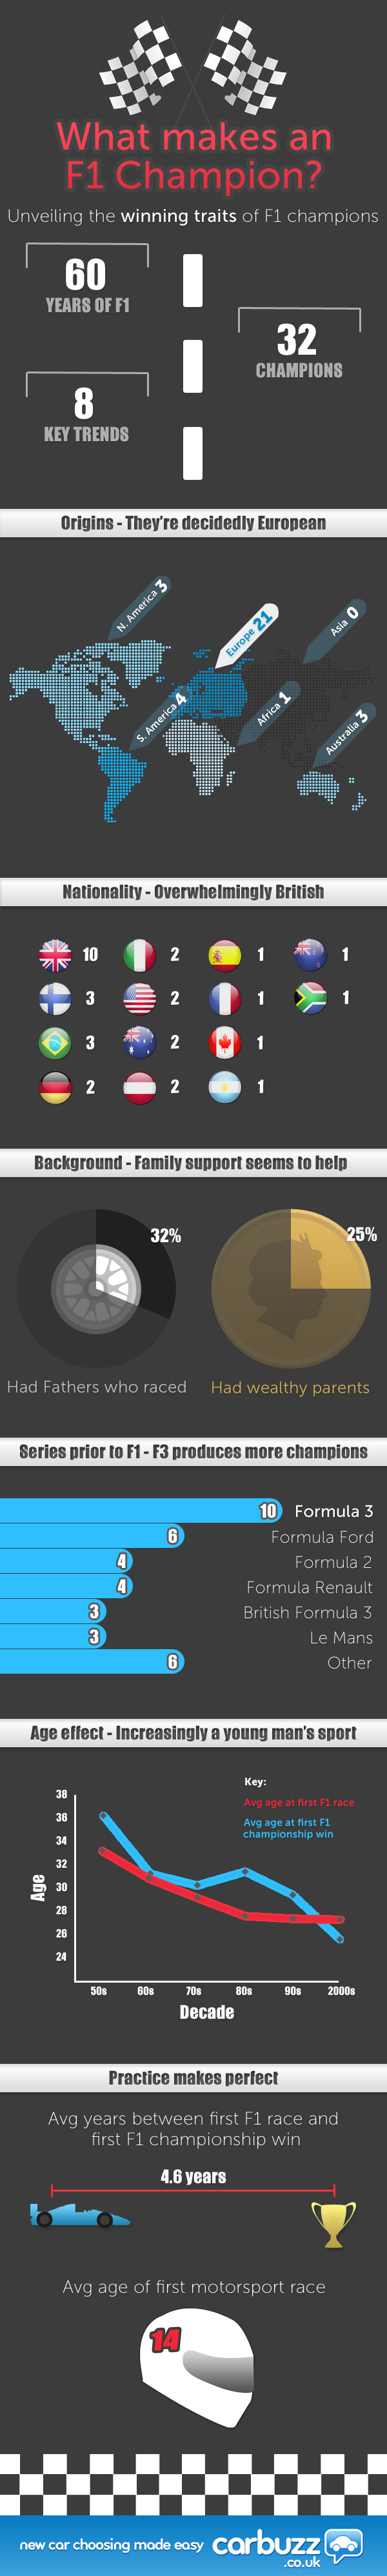 What makes an F1 Champion